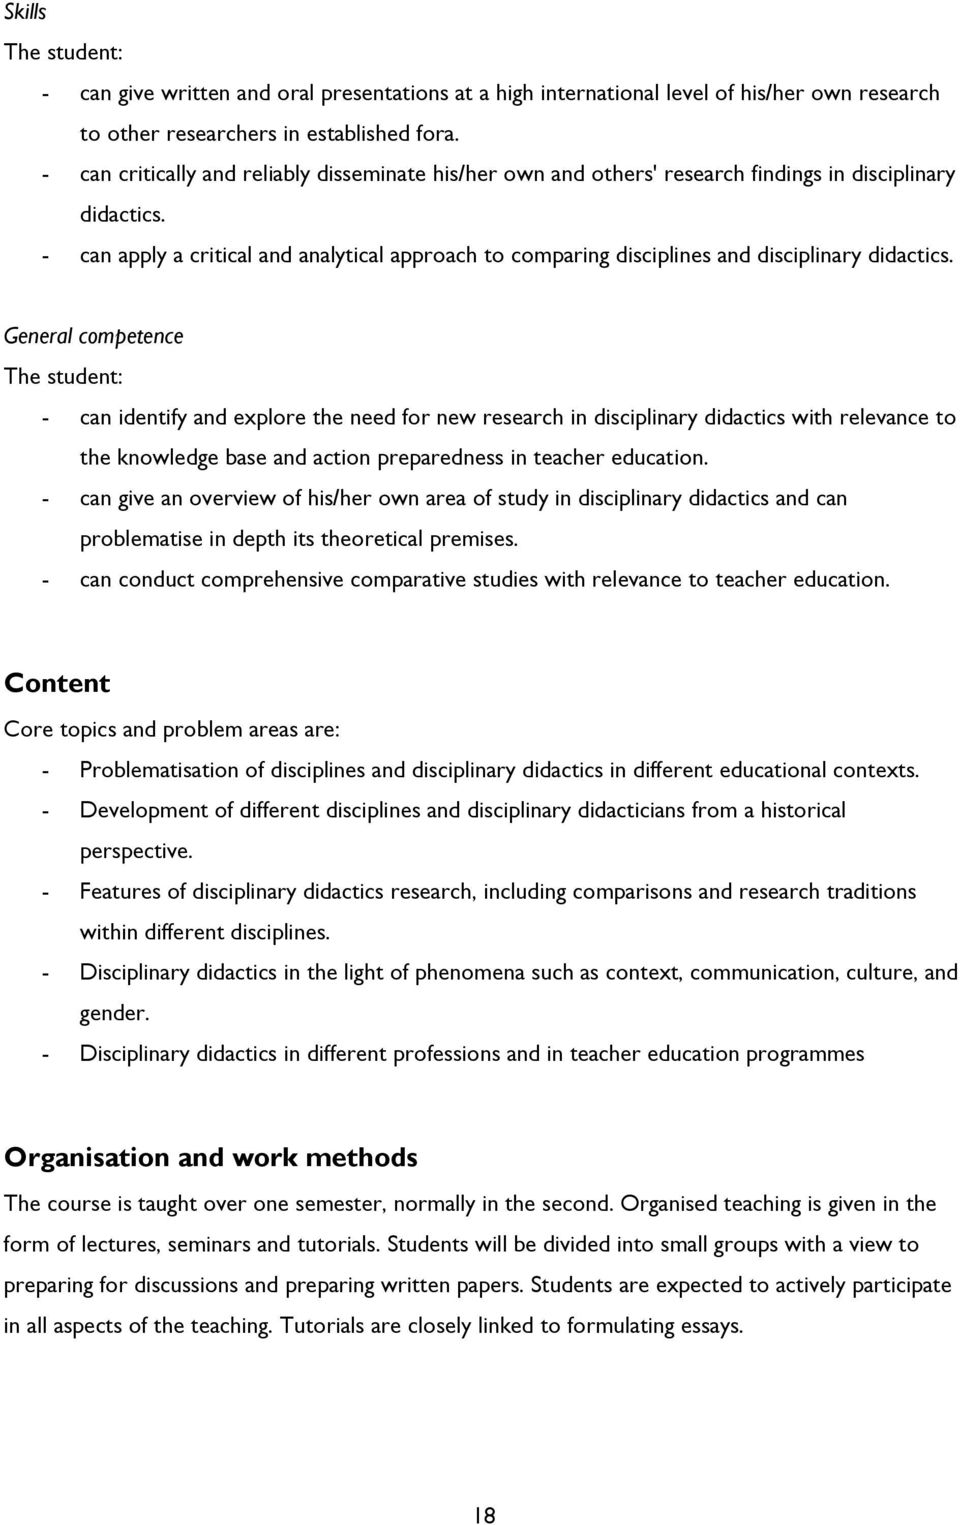 - can apply a critical and analytical approach to comparing disciplines and disciplinary didactics.